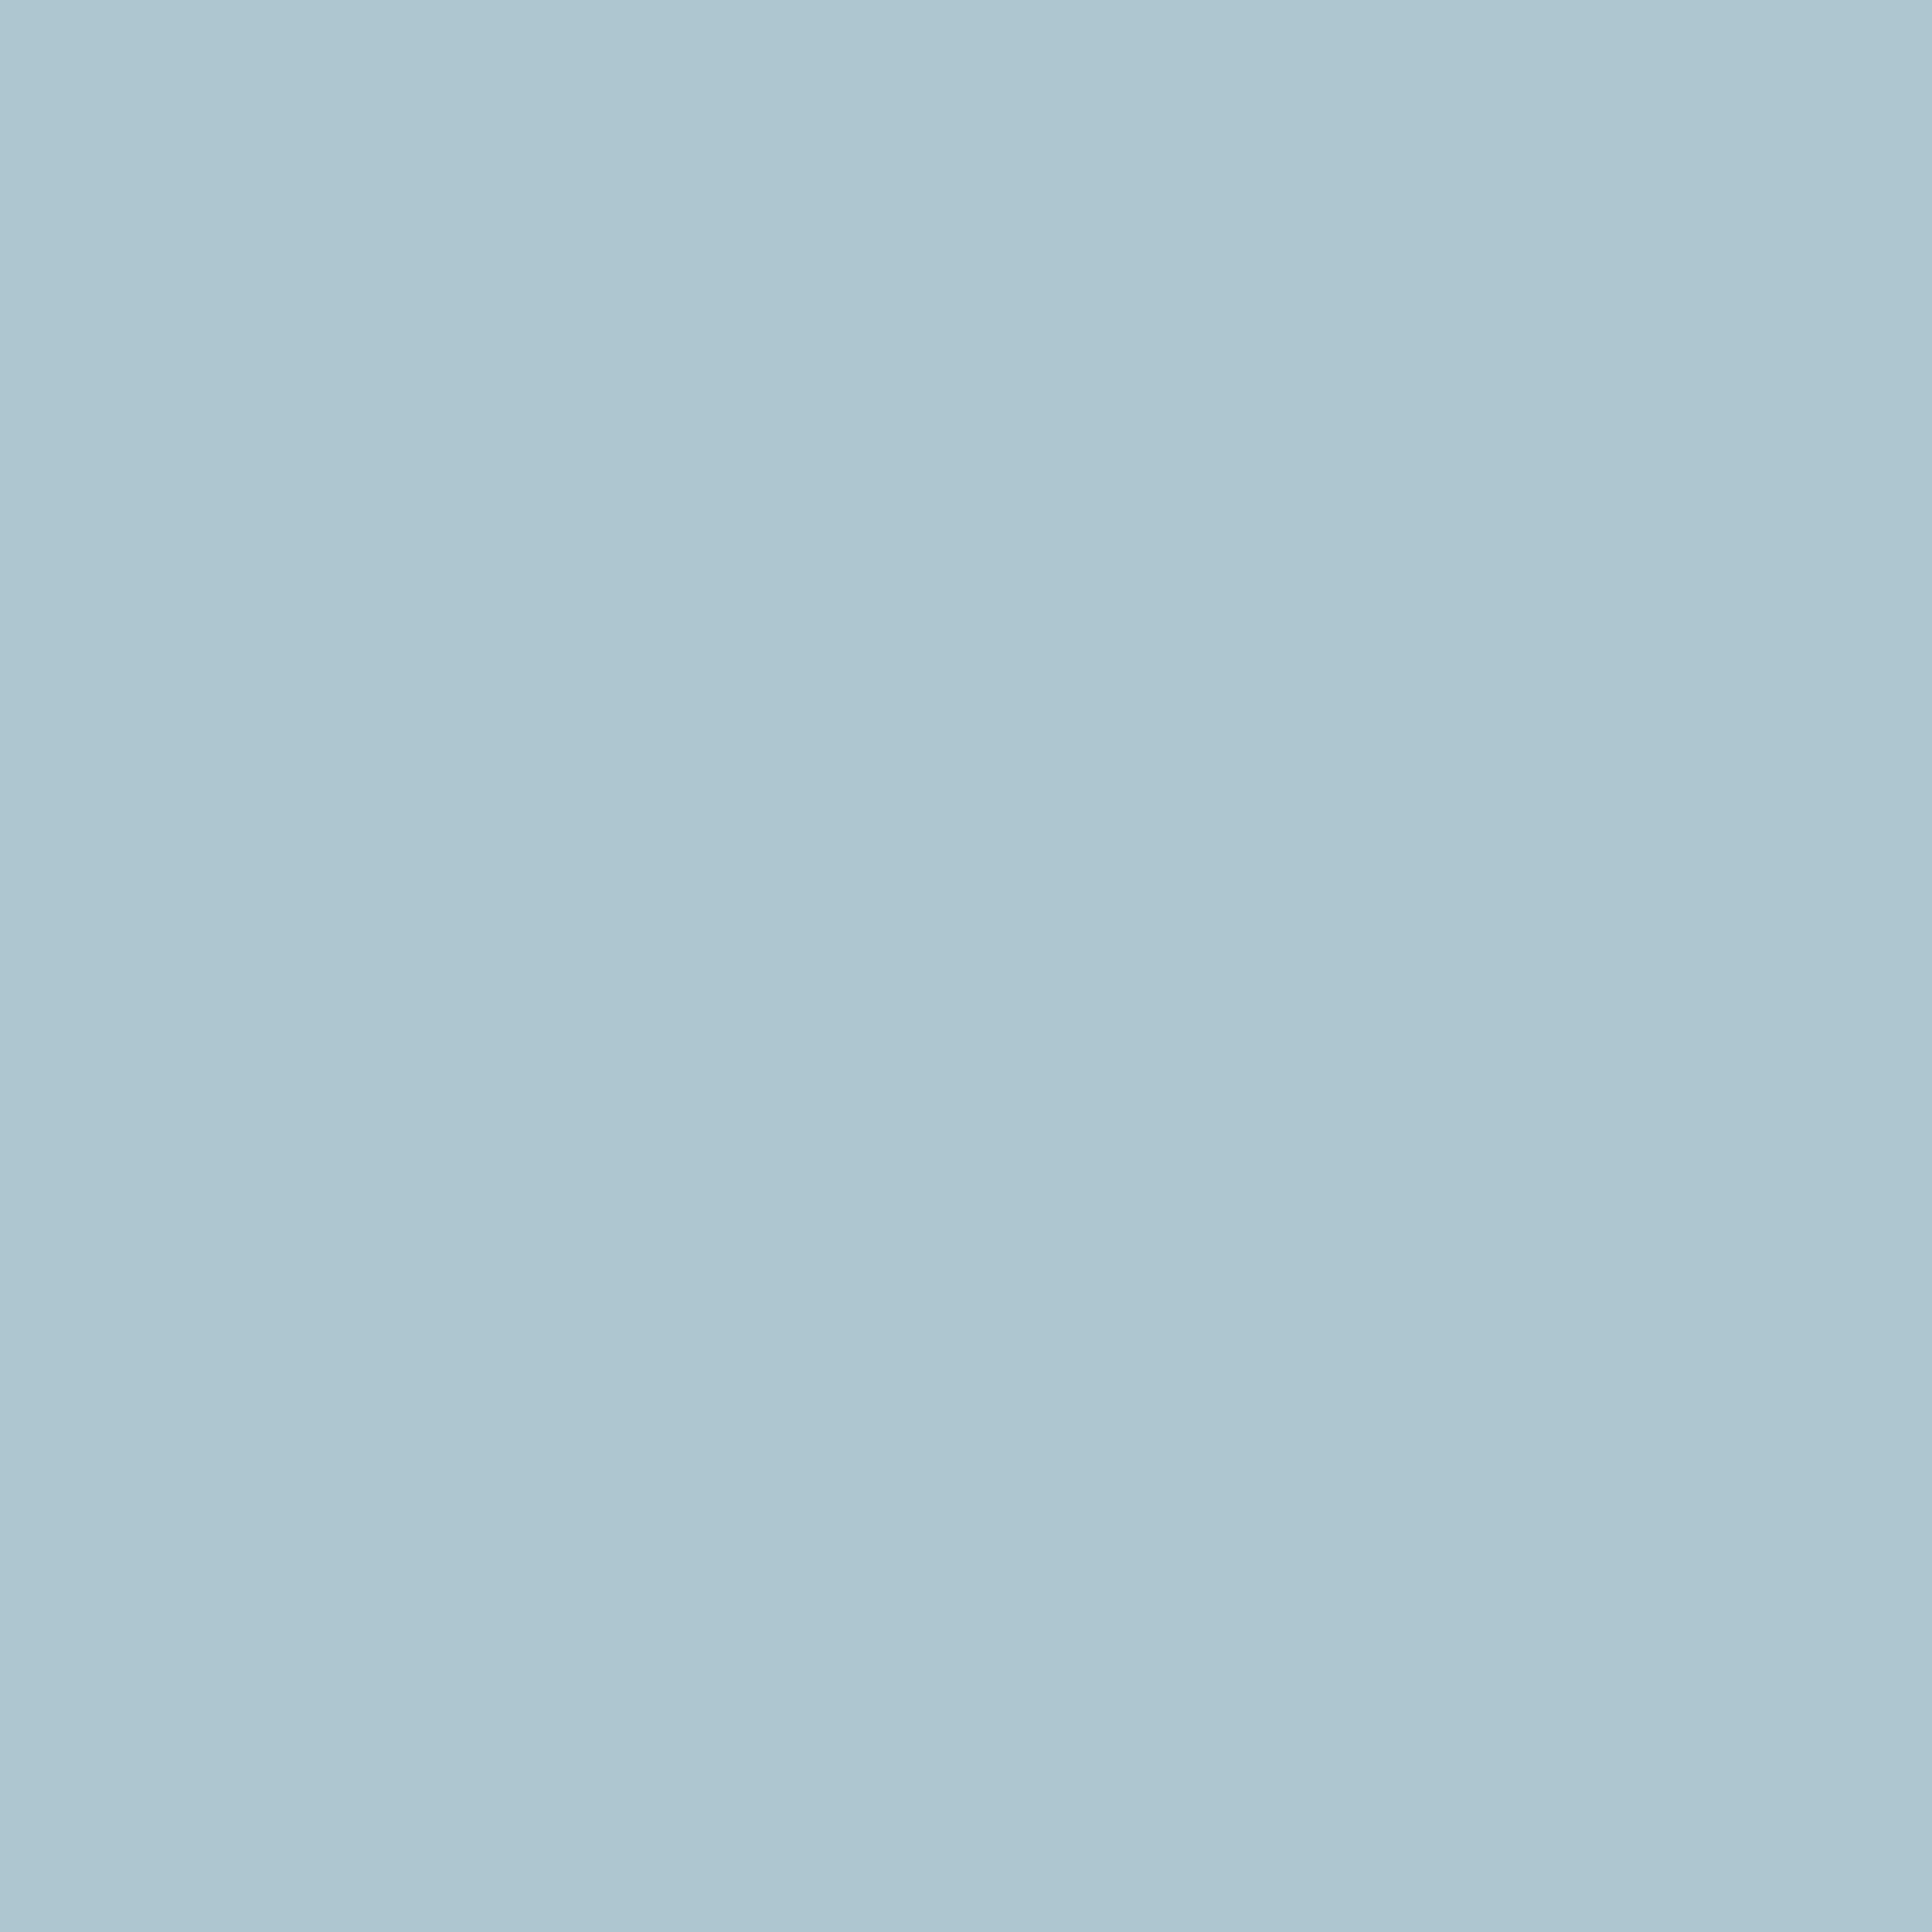 3600x3600 Pastel Blue Solid Color Background